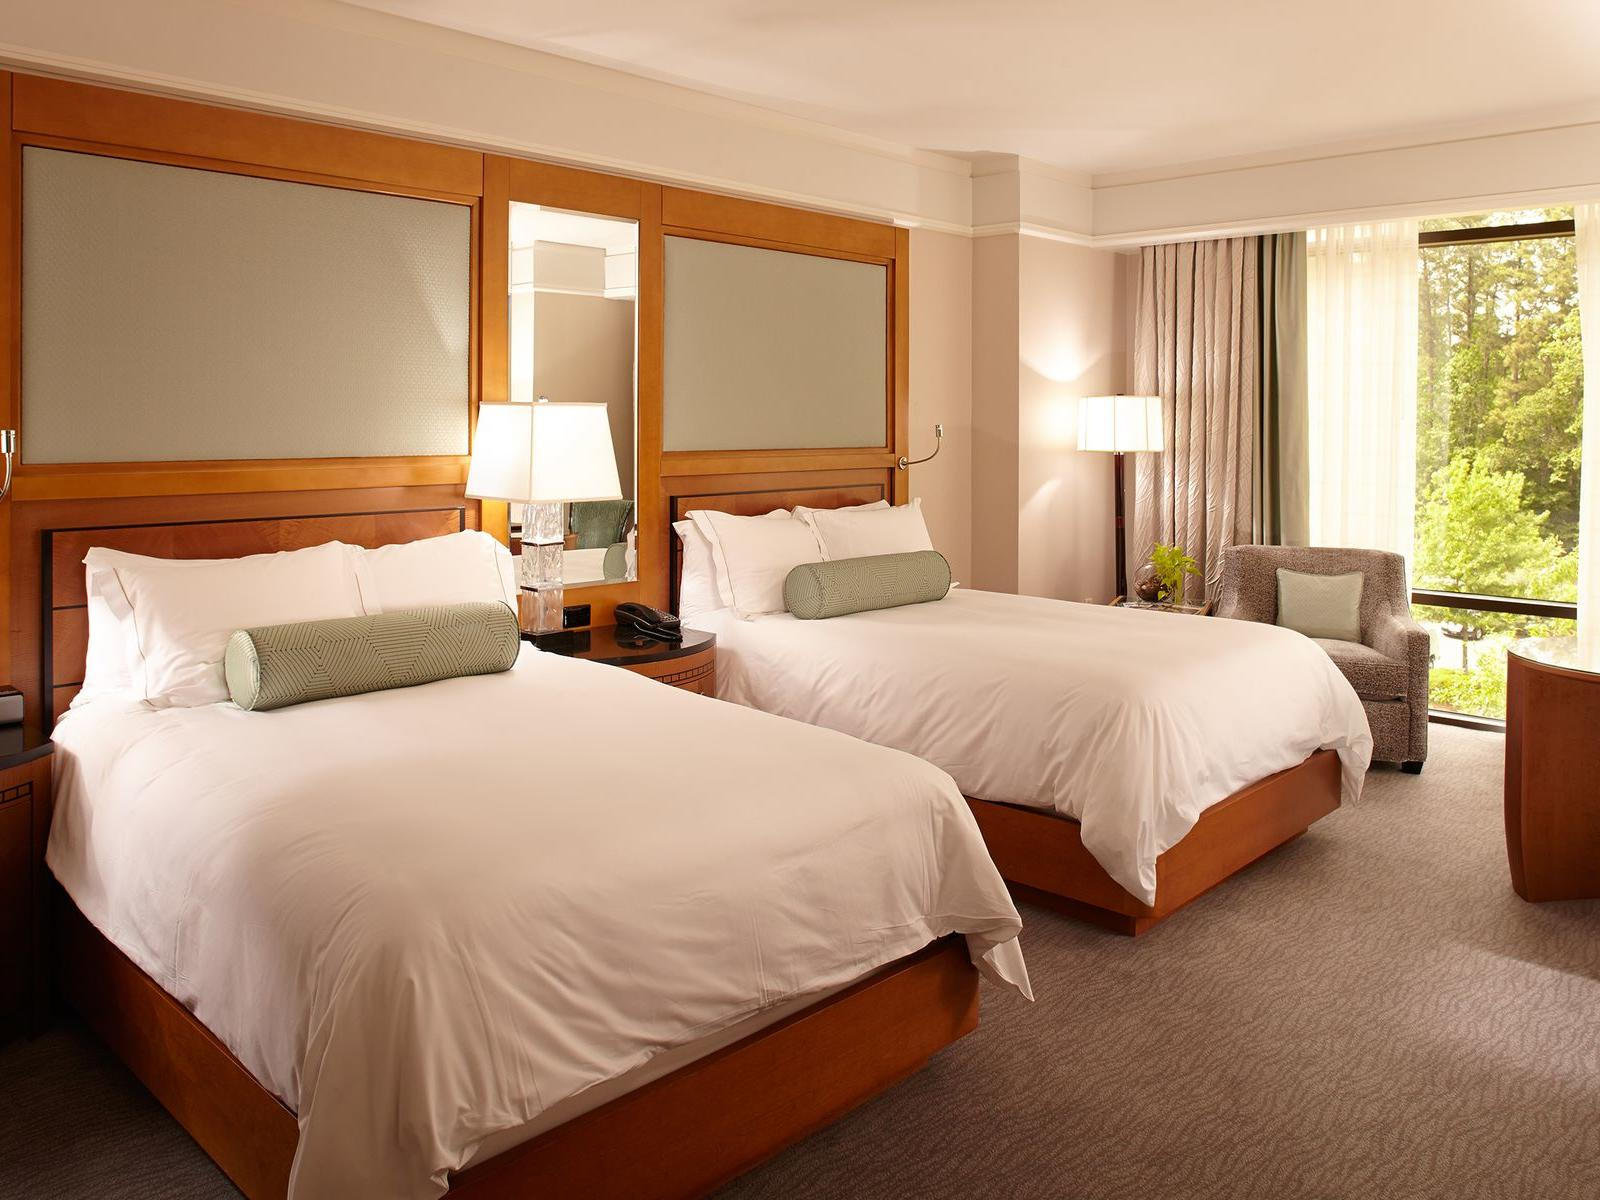 two double beds in hotel room